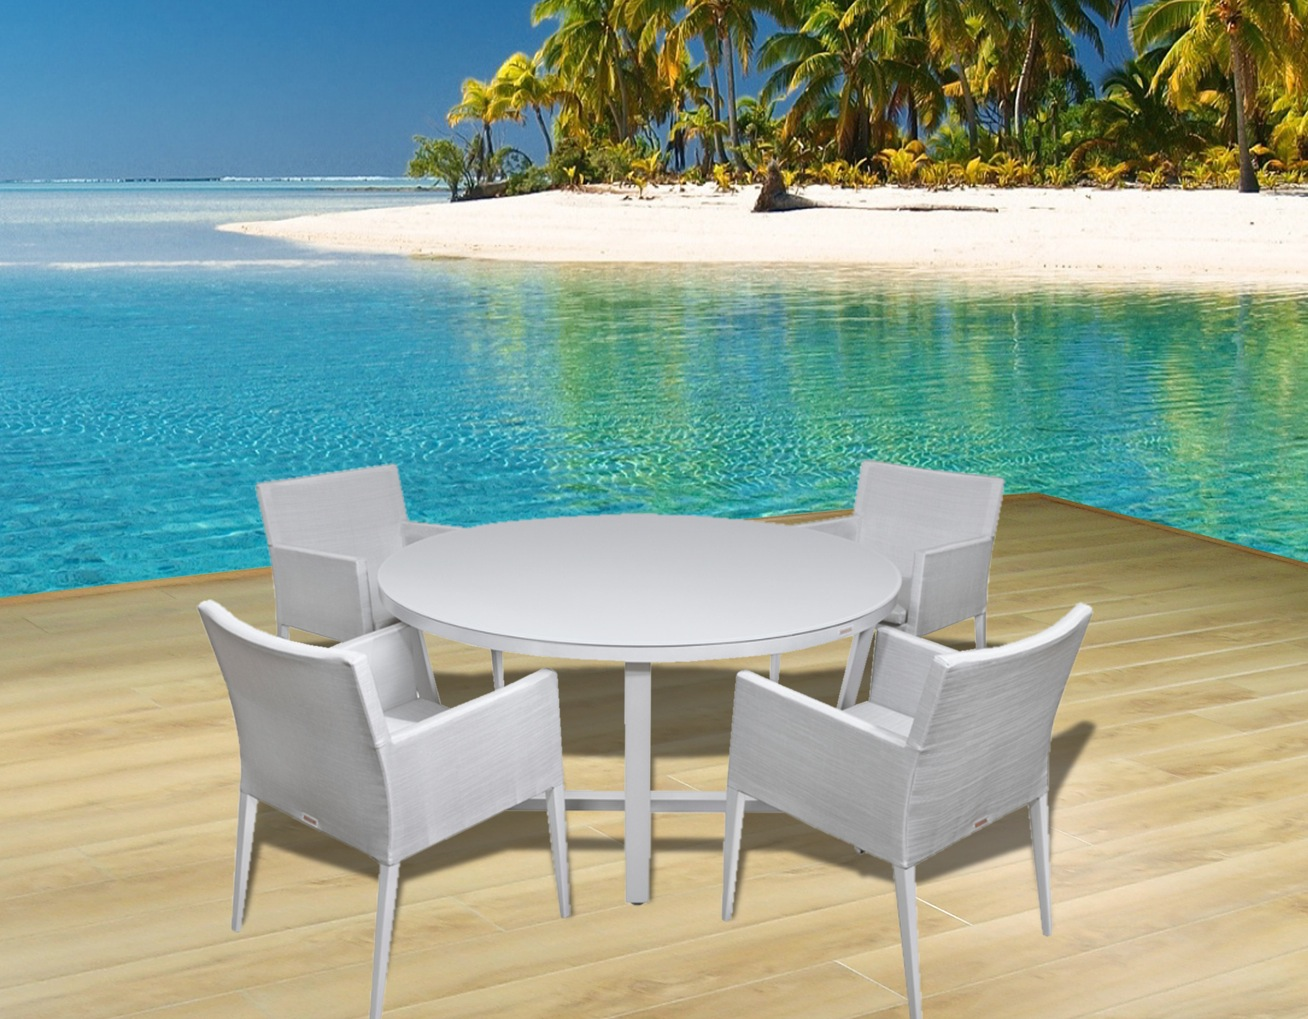 contemporary patio furniture Modern Outdoor Patio Furniture, Dining Sets, Contemporary